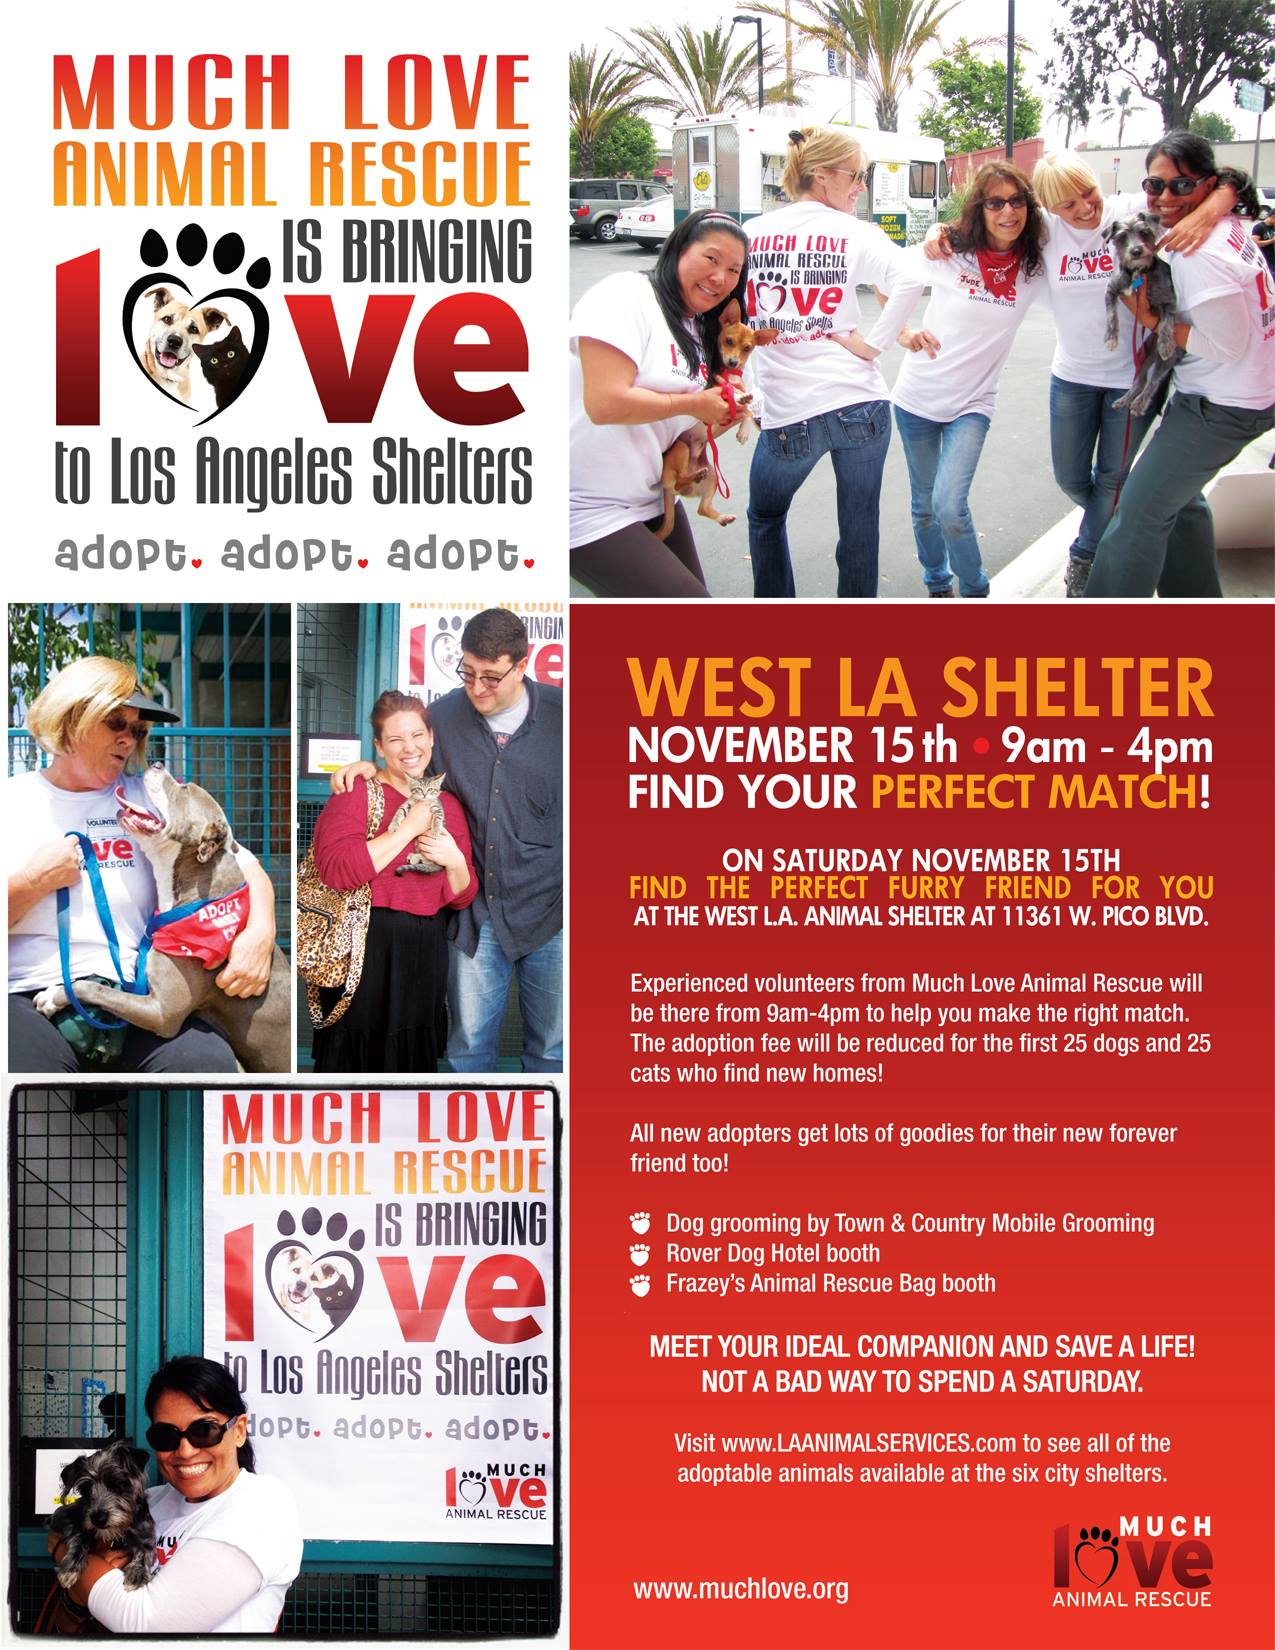 much love animal recue is bringing love to la shelters   los angeles